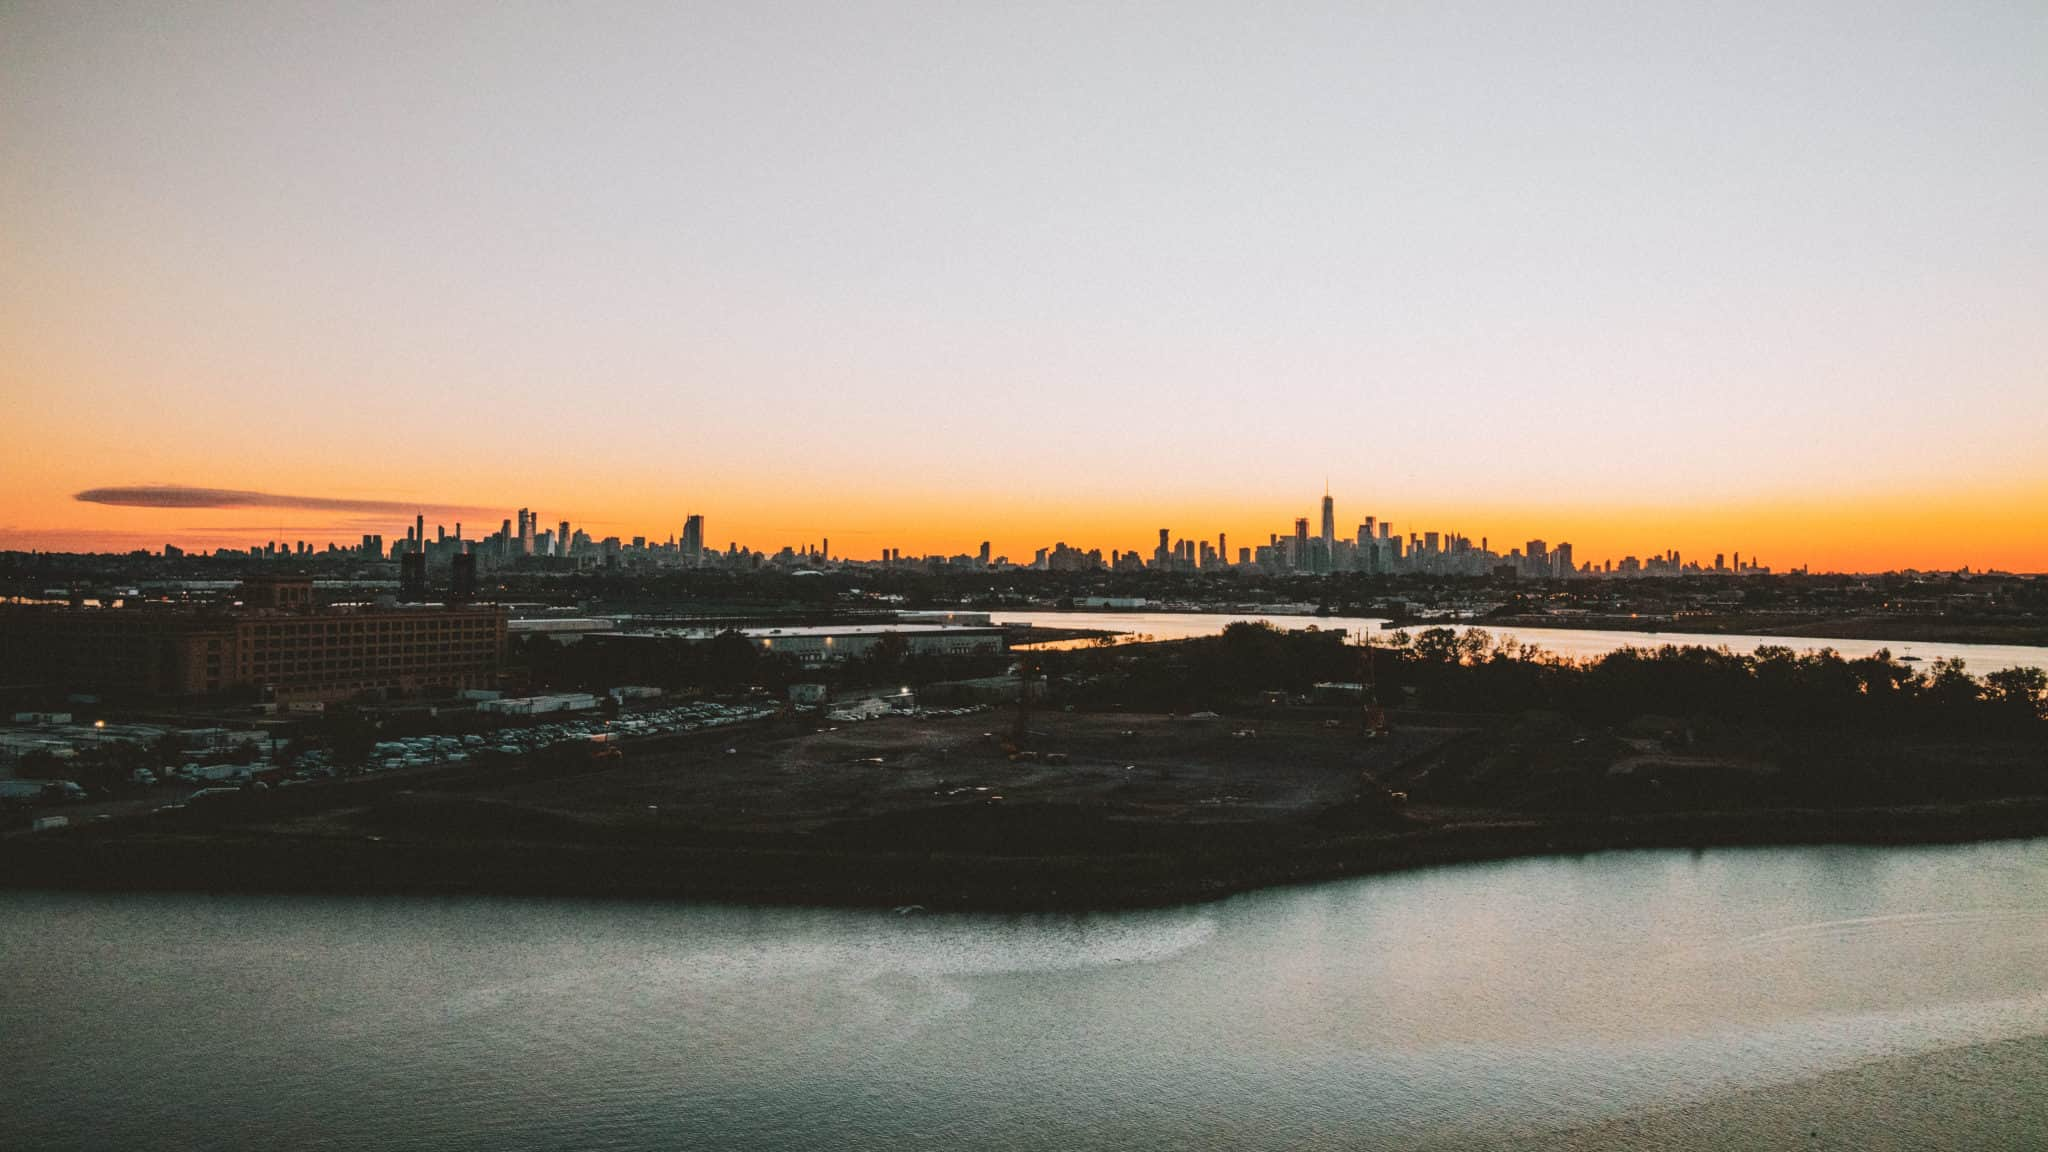 Sunrise over Manhattan Skyline